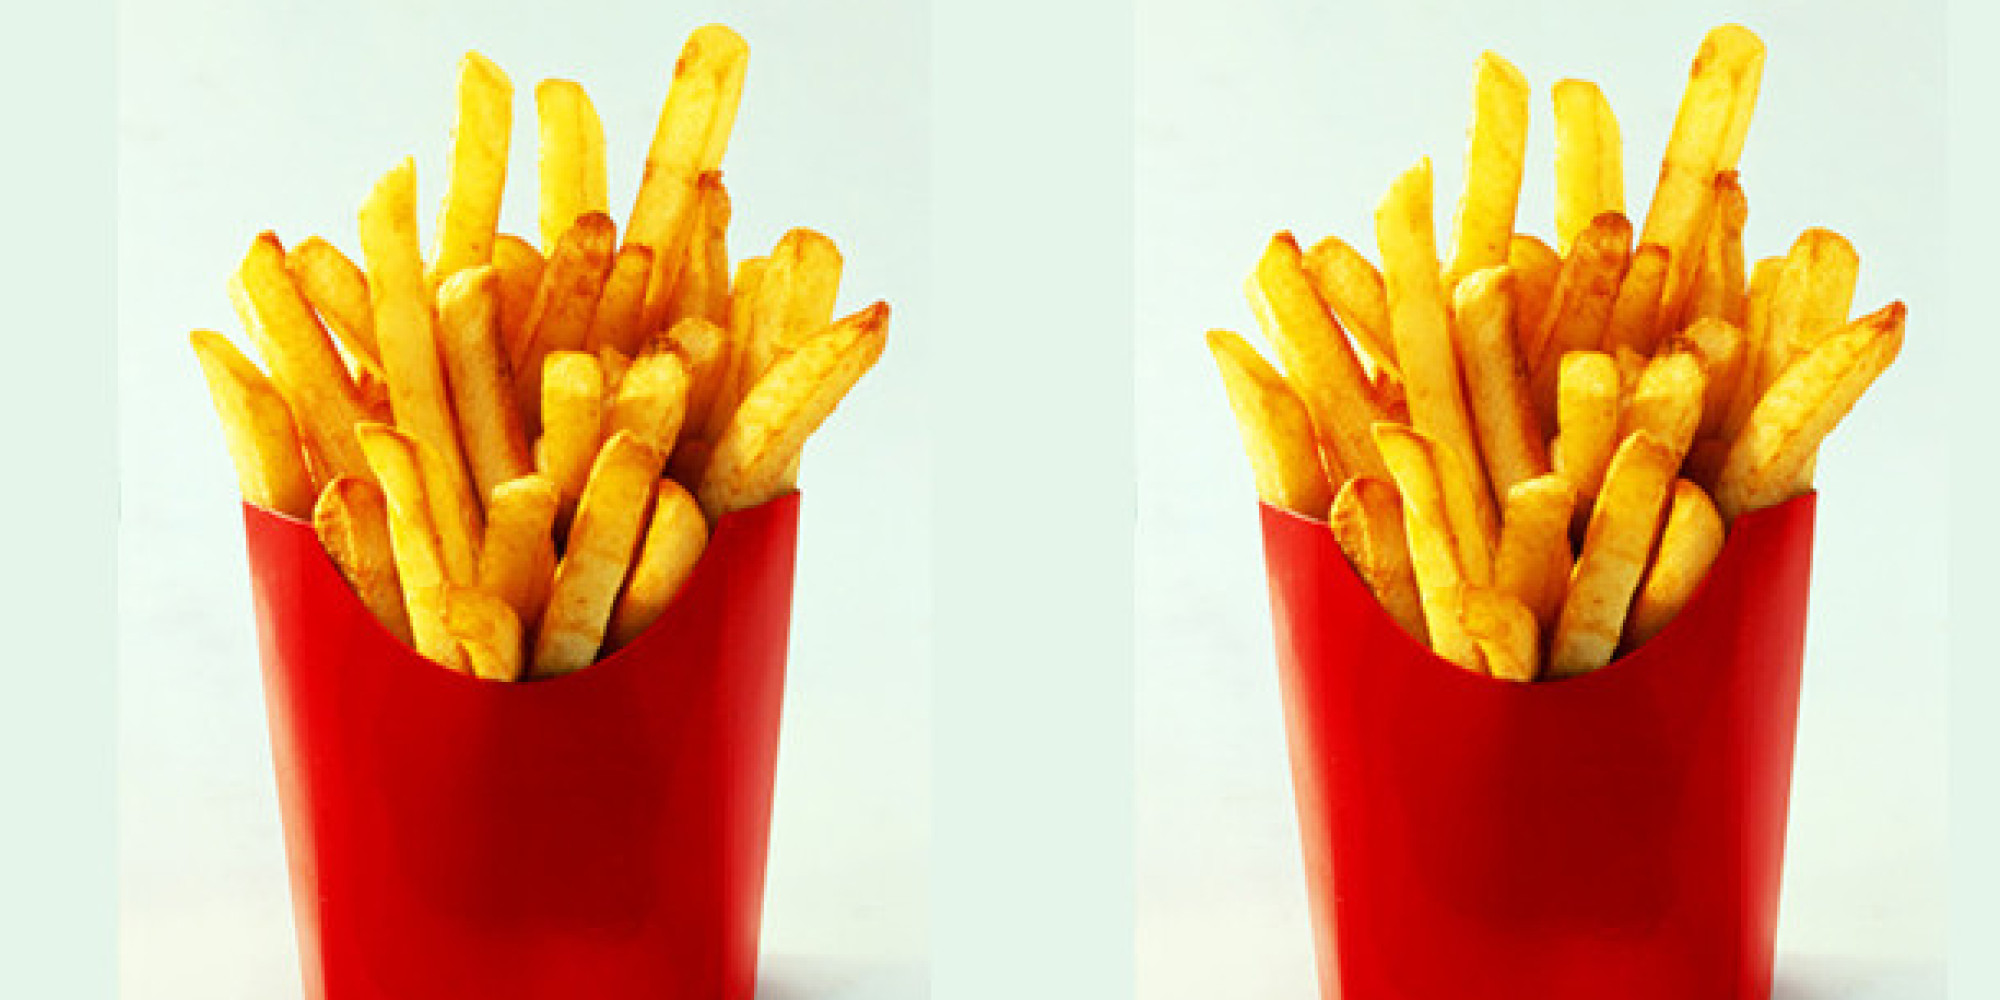 Fast Food That Served The Most French Fries